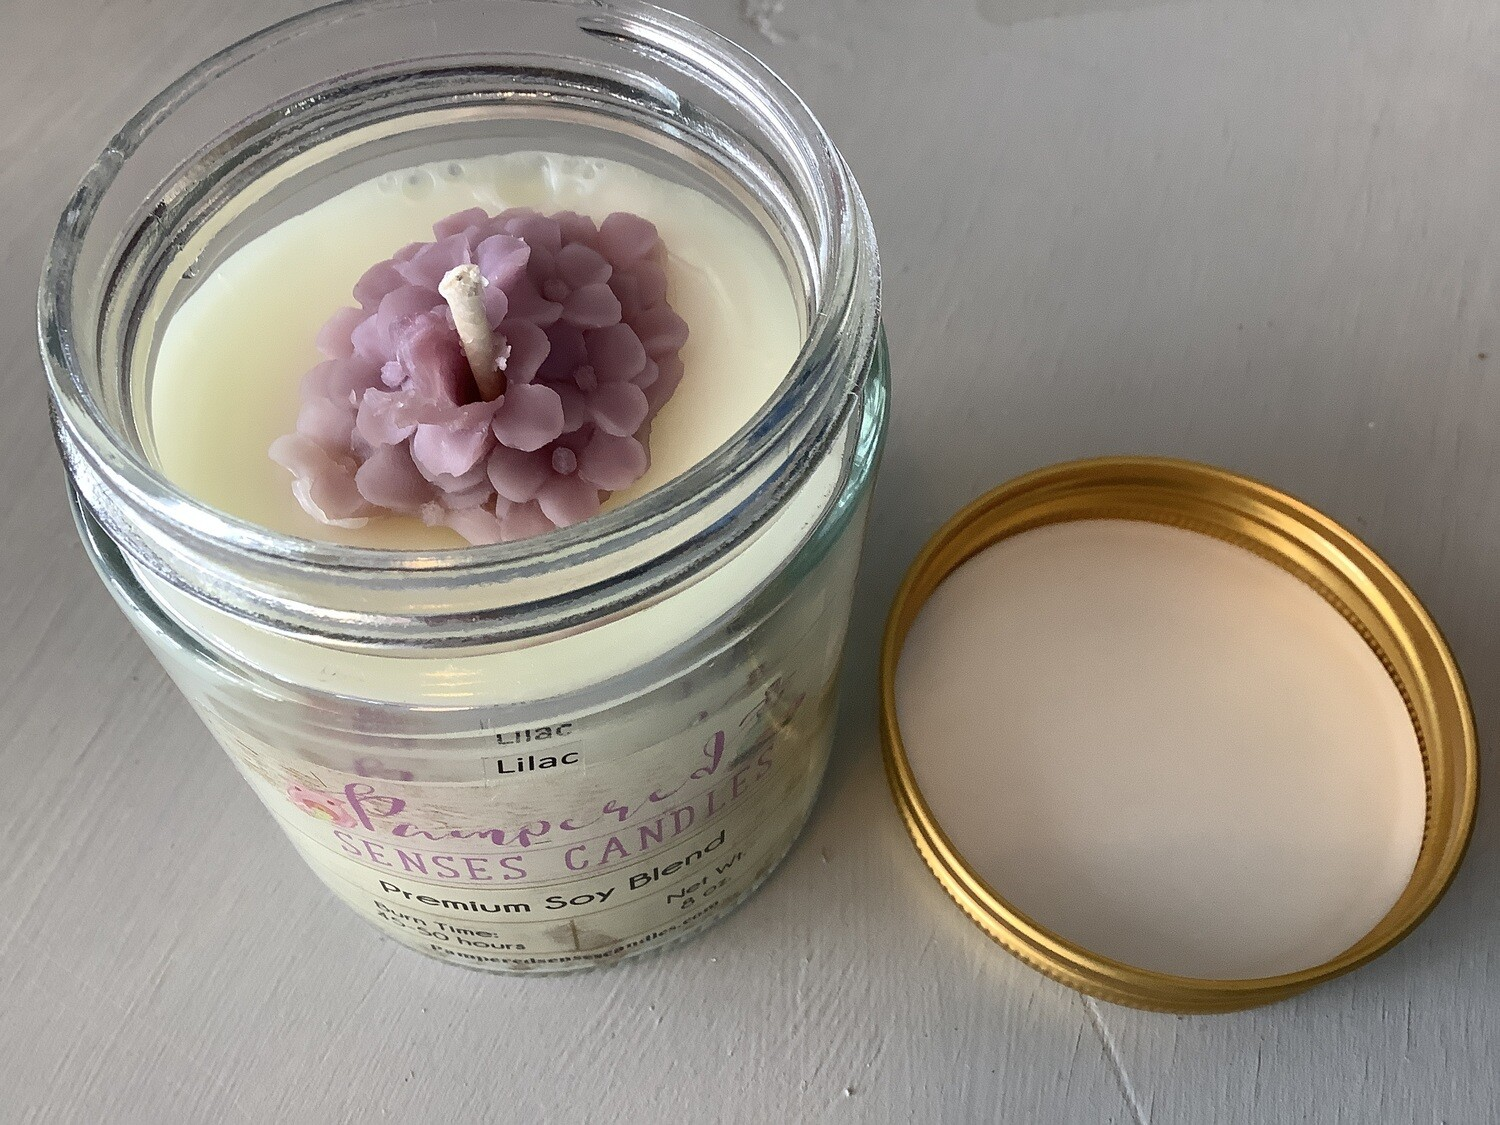 PAMPERED SENSES CANDLE LILAC 8 OZ